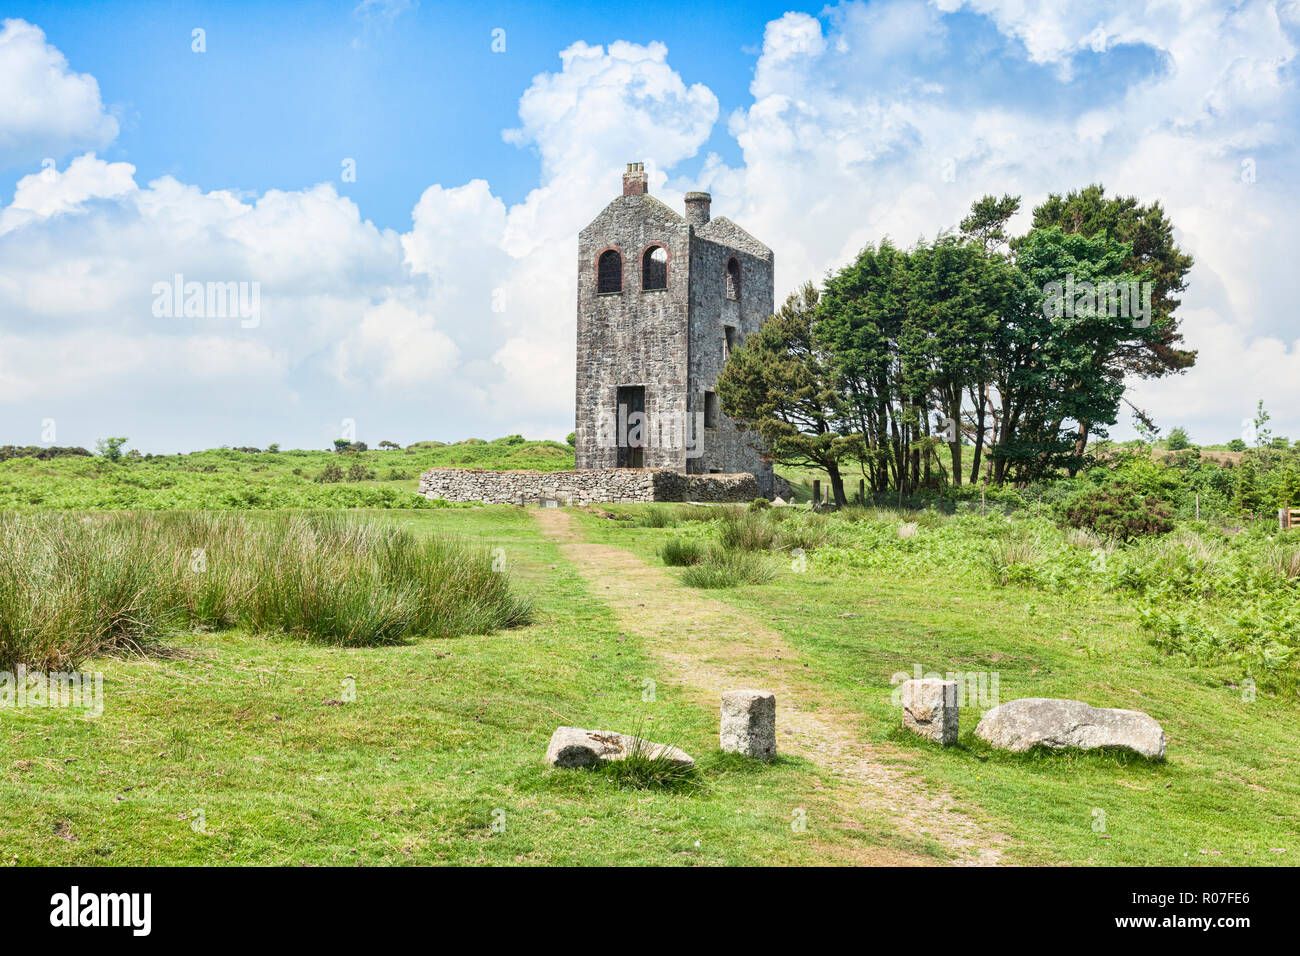 Housemans Engine House, of the South Phoenix Mine, built in 1881, a relic of the Cornish tin and copper miining industry. - Stock Image